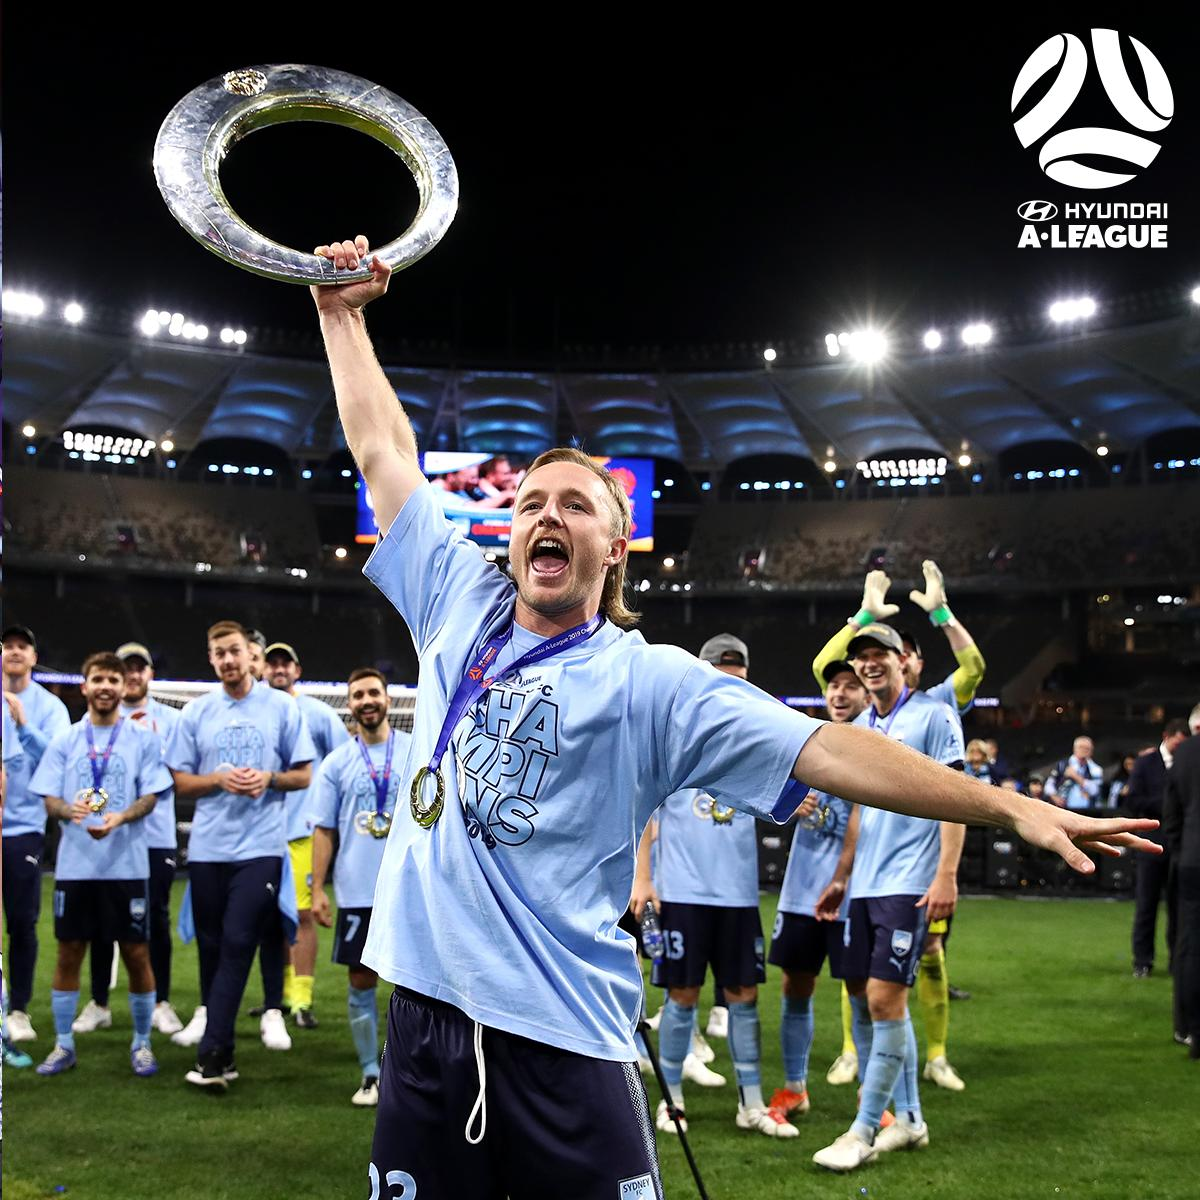 One week ago today!   #ALeagueGF